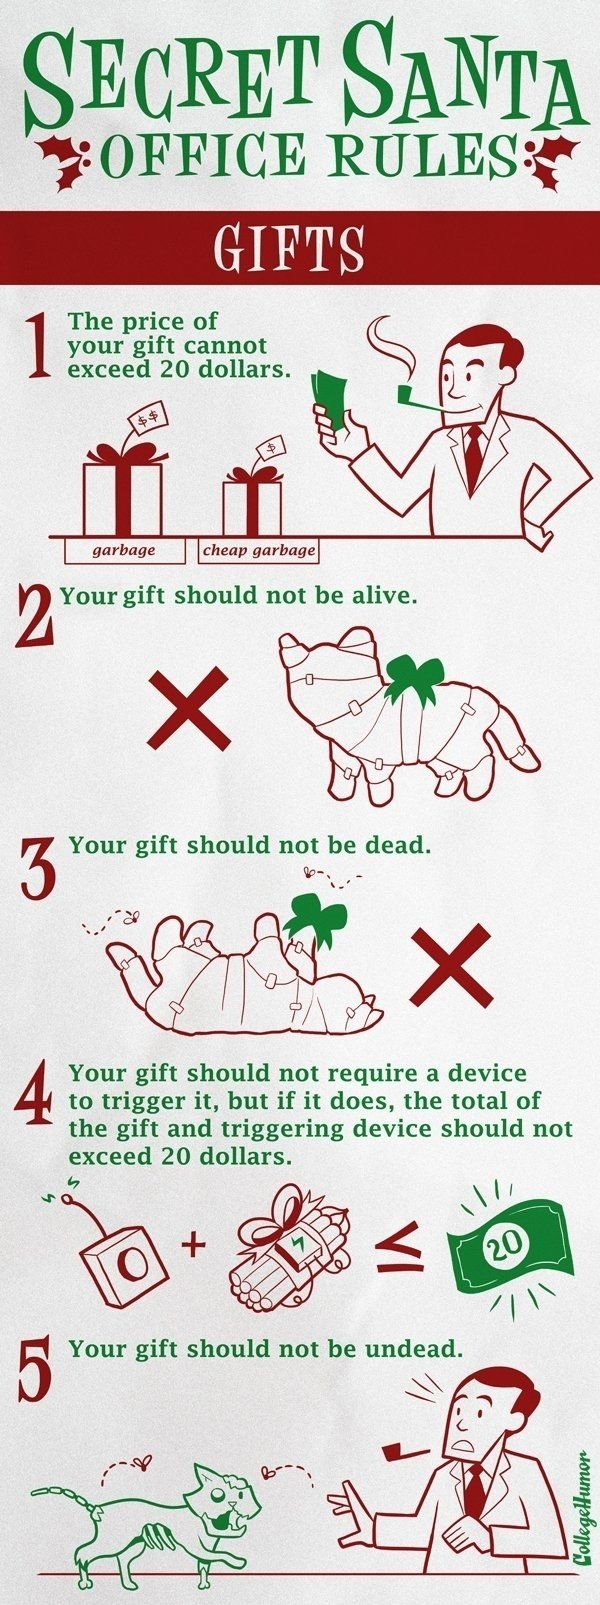 10 Most Recommended Secret Santa Ideas For Work secret santa office rules haha they told me im hosting the 2020